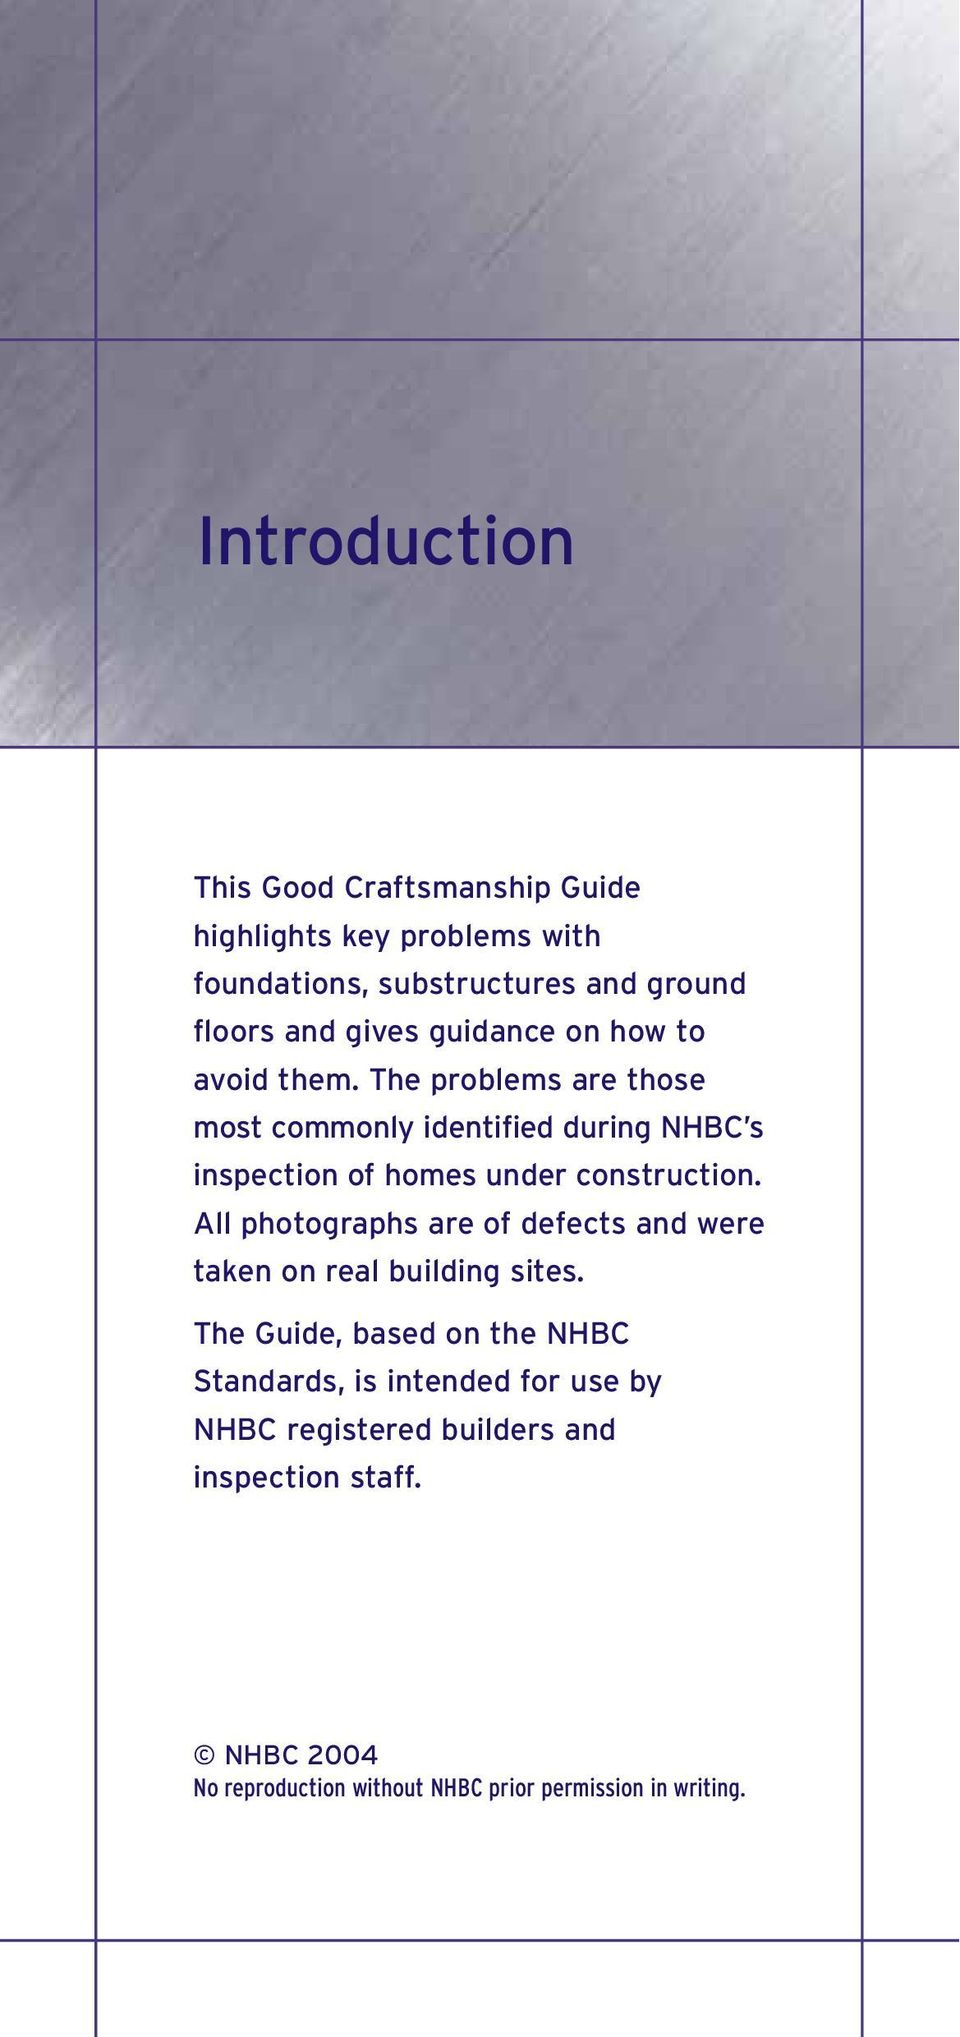 The problems are those most commonly identified during NHBC s inspection of homes under construction.